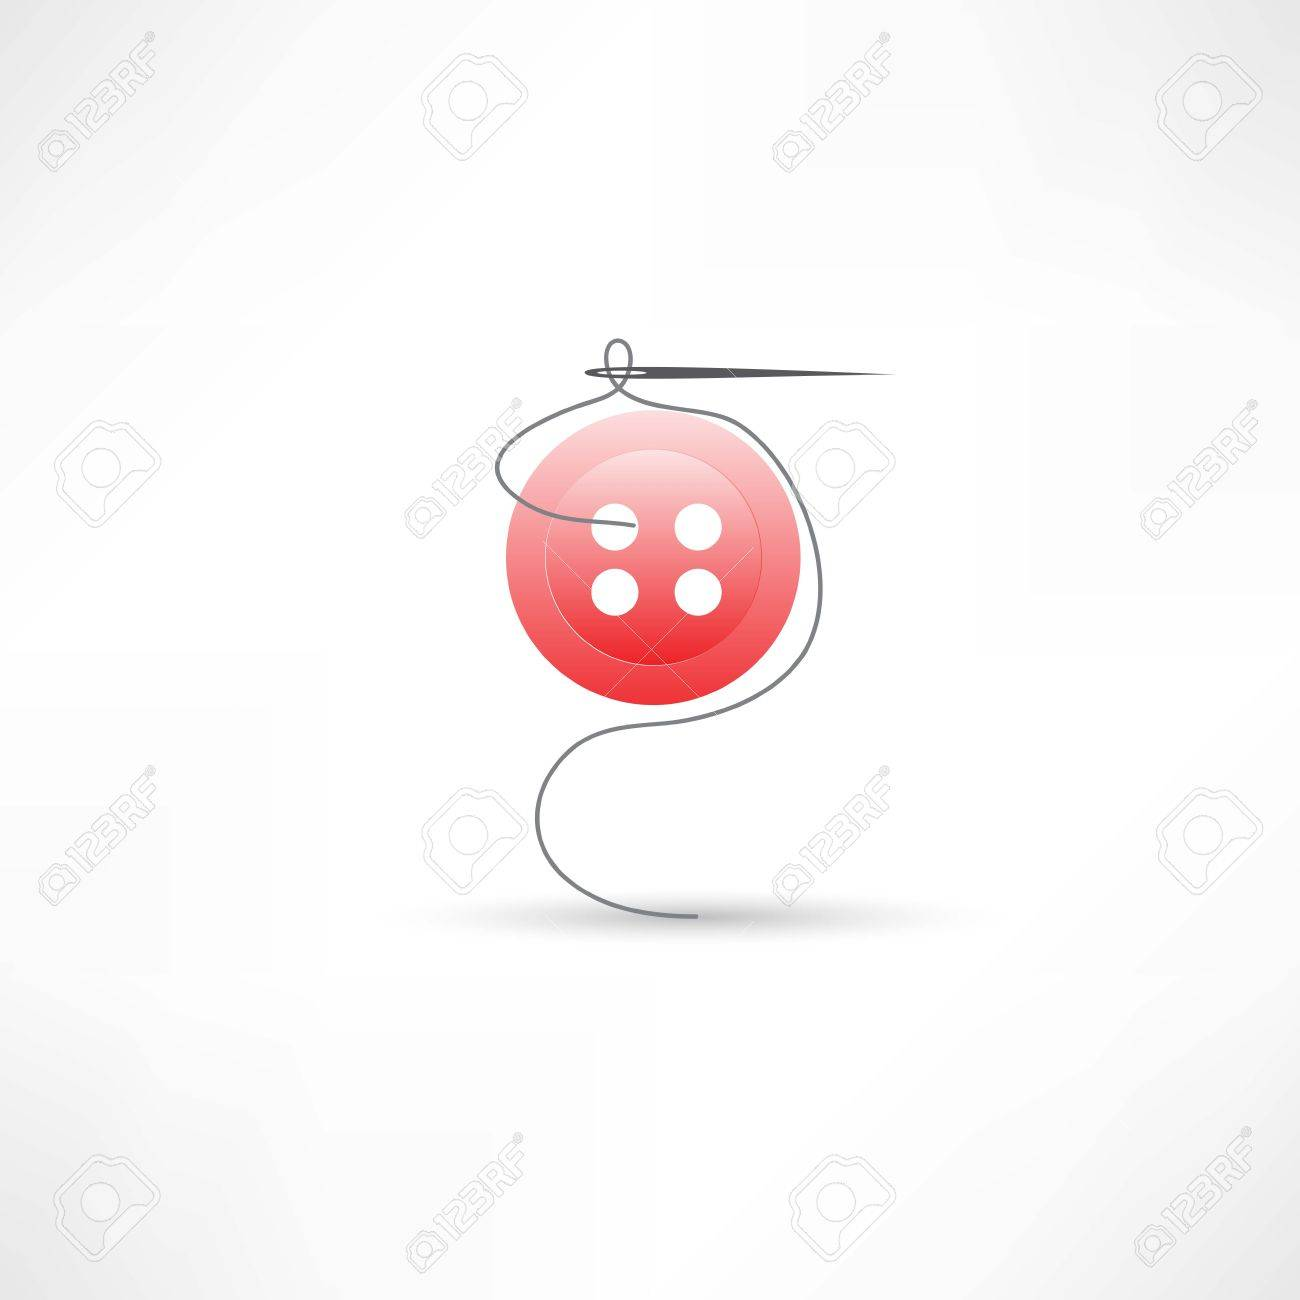 sewing needle icon Stock Vector - 24584146